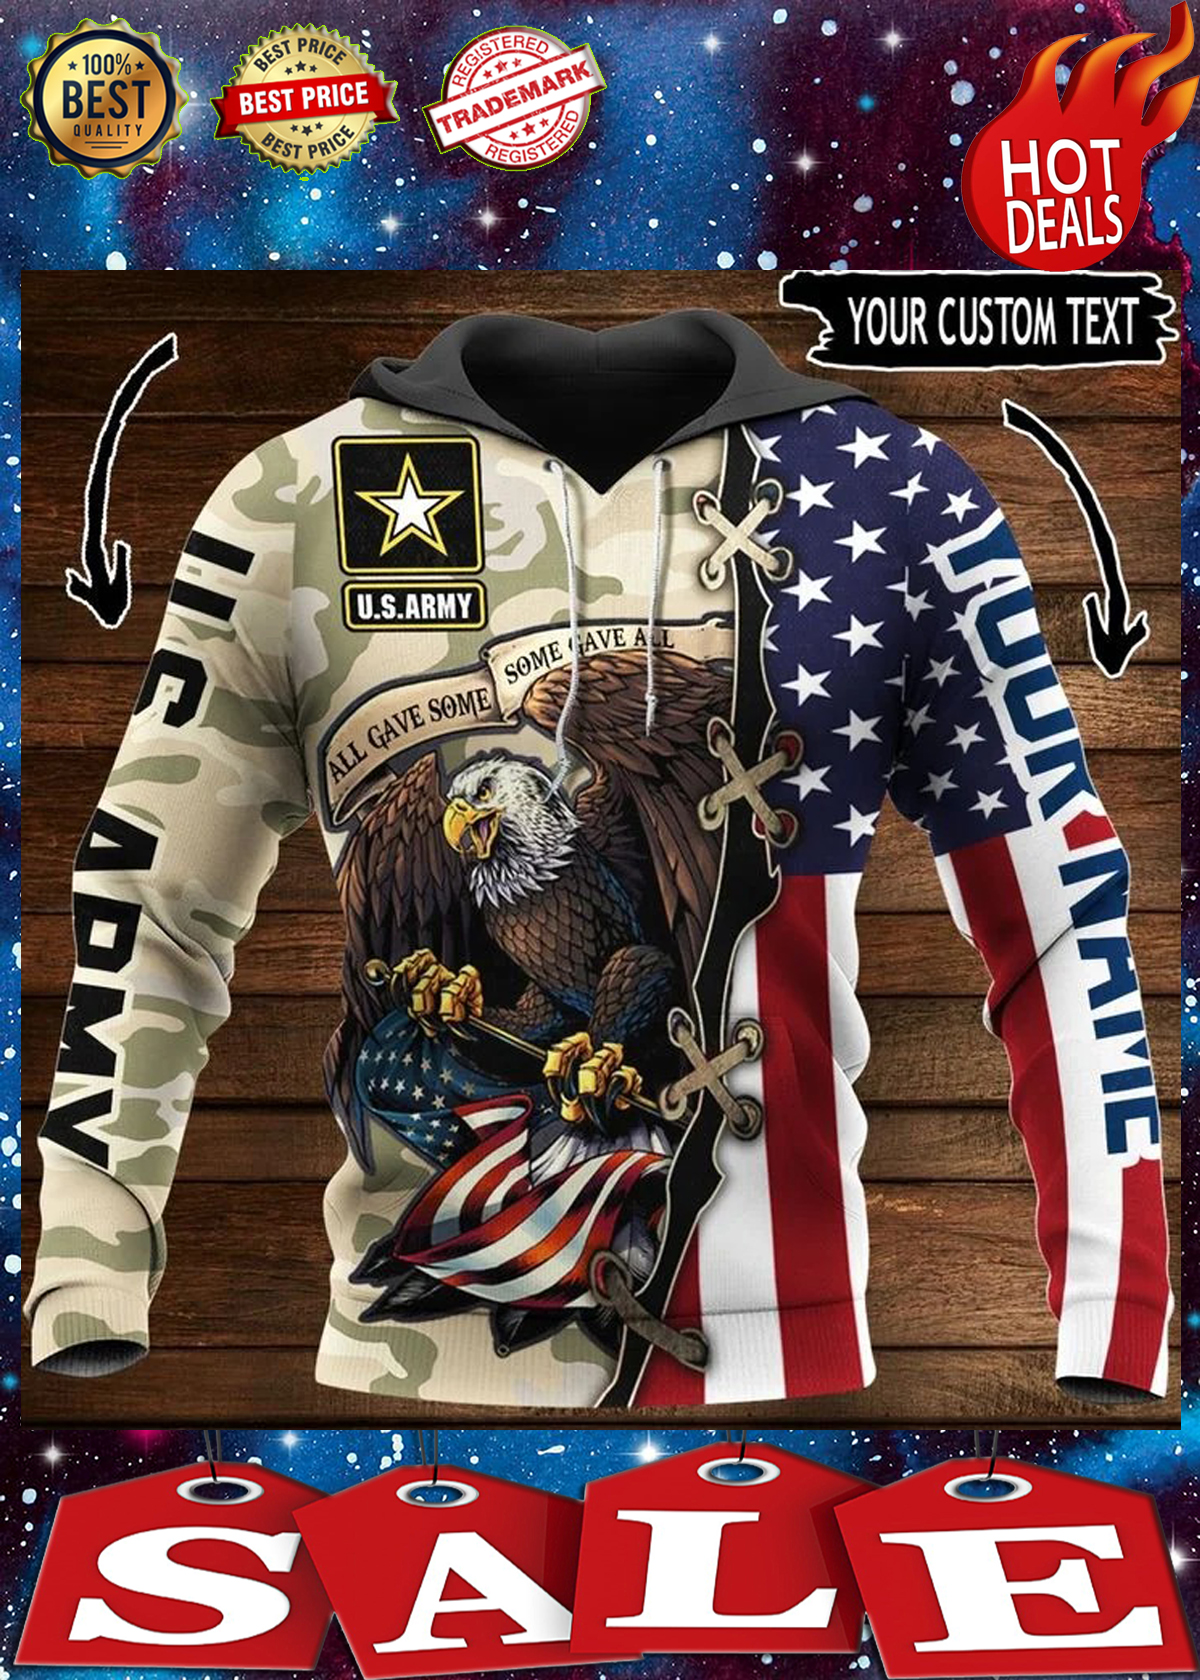 Us army all gave some some gave all personalize custom name 3d hoodie 1